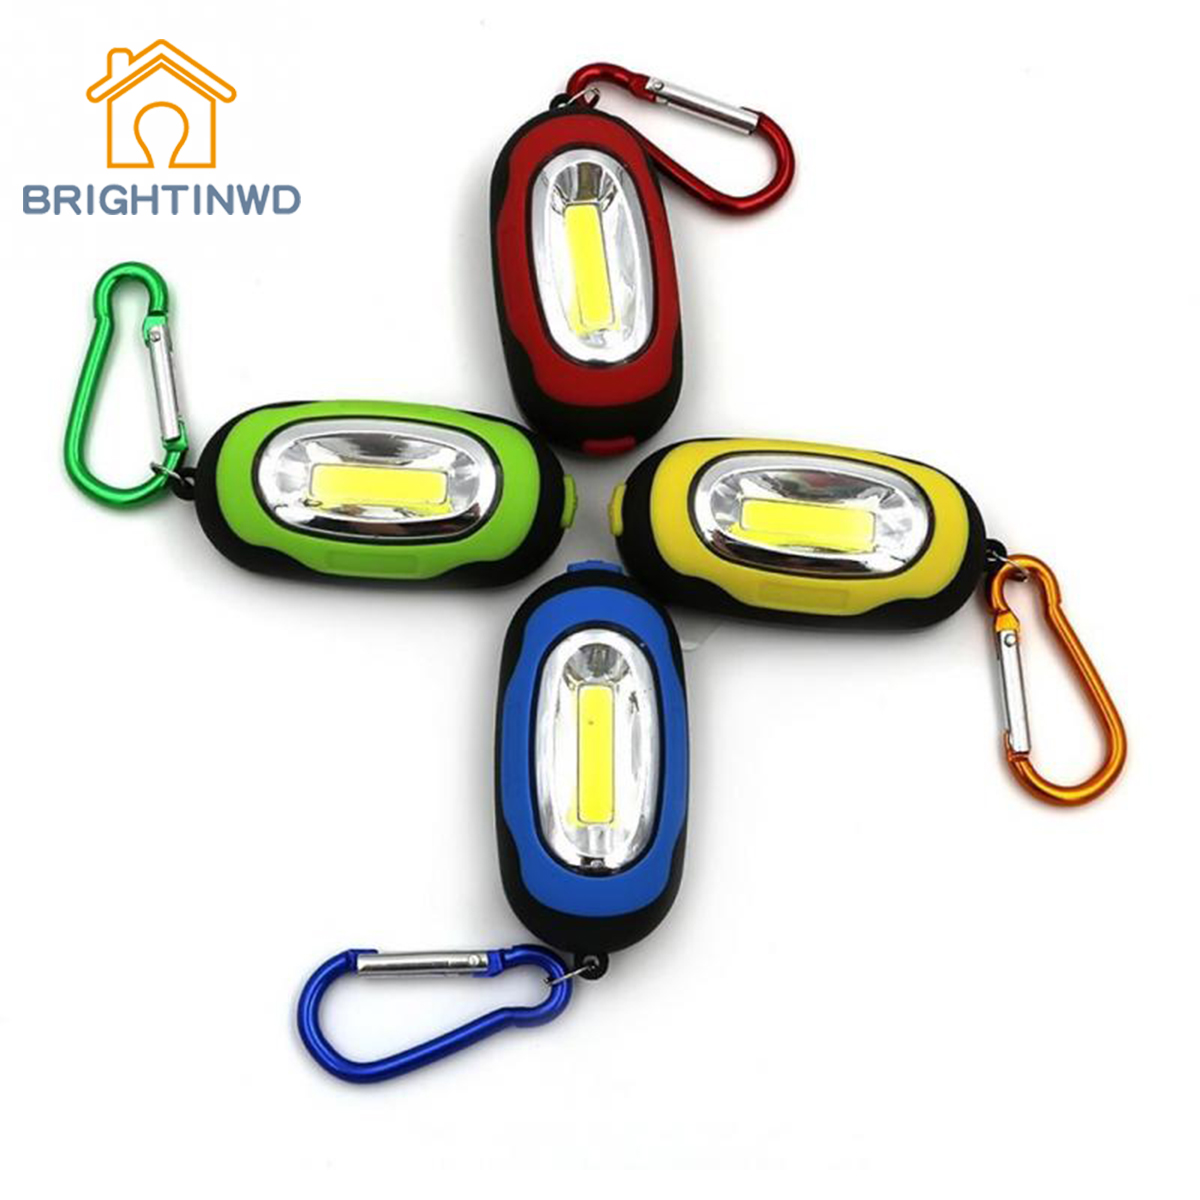 BRIGHTINWD New Portable Magnetic Key Chain Flashlight Torch COB LED Working Light Lamp Camping Lantern